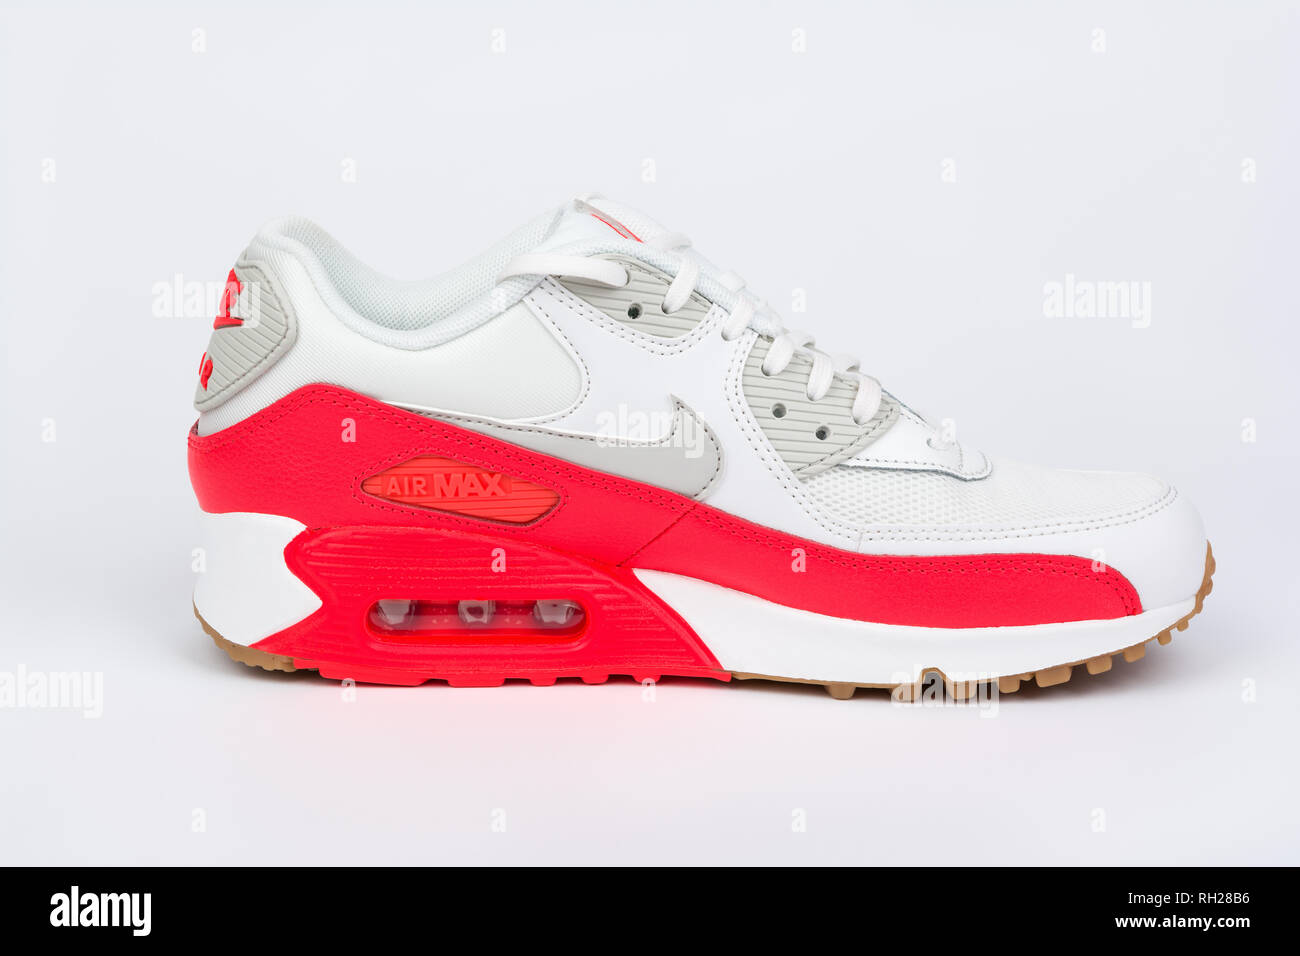 best website 8656a 5c6bc BURGAS IN BULGARIA - Agosto 30, 2016  Nike Air Max scarpe donna - sneakers